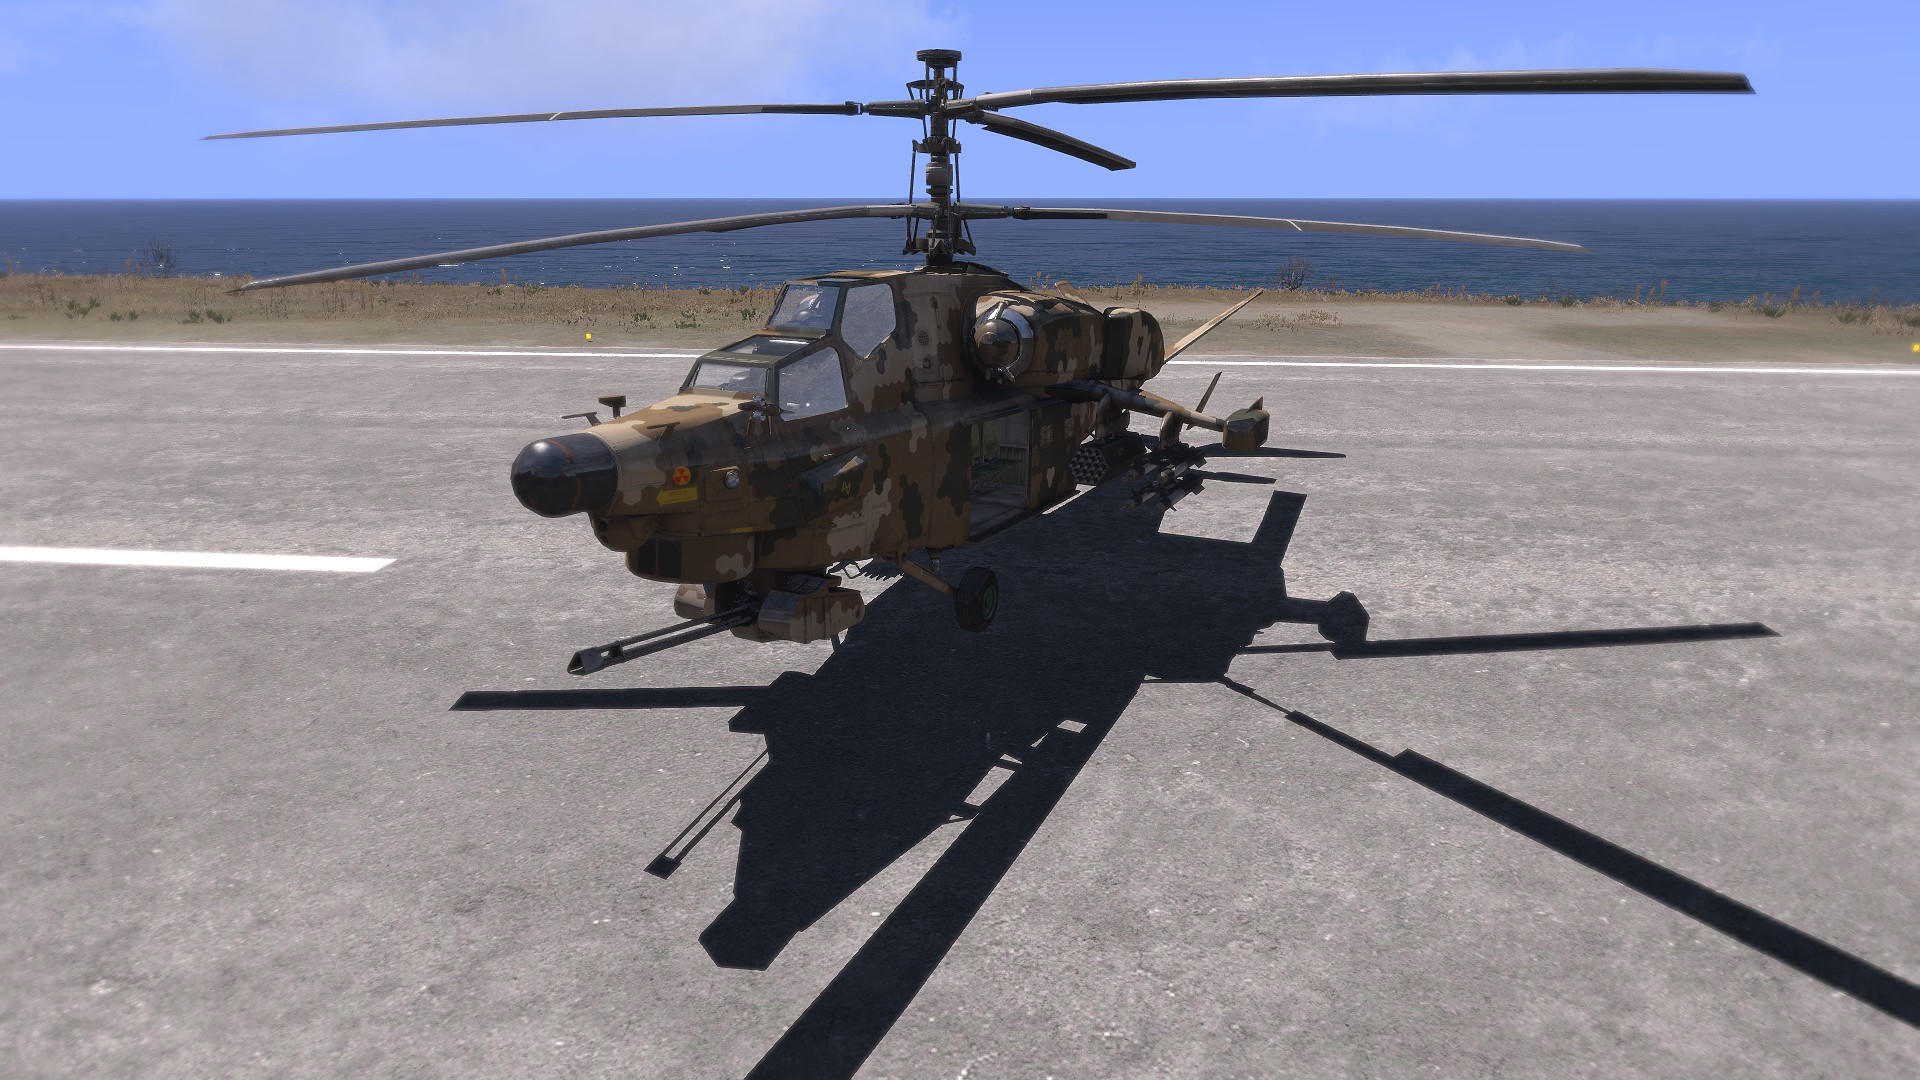 helicopter no tail rotor with  on How Can A Helicopter Be Designed Without A Tail Rotor furthermore Transformers Prime Airachnid Part 2 The Review further Kaman K Max Heavy Lift Helicopter 4 in addition Parts Of Helicopter as well Aircraft.